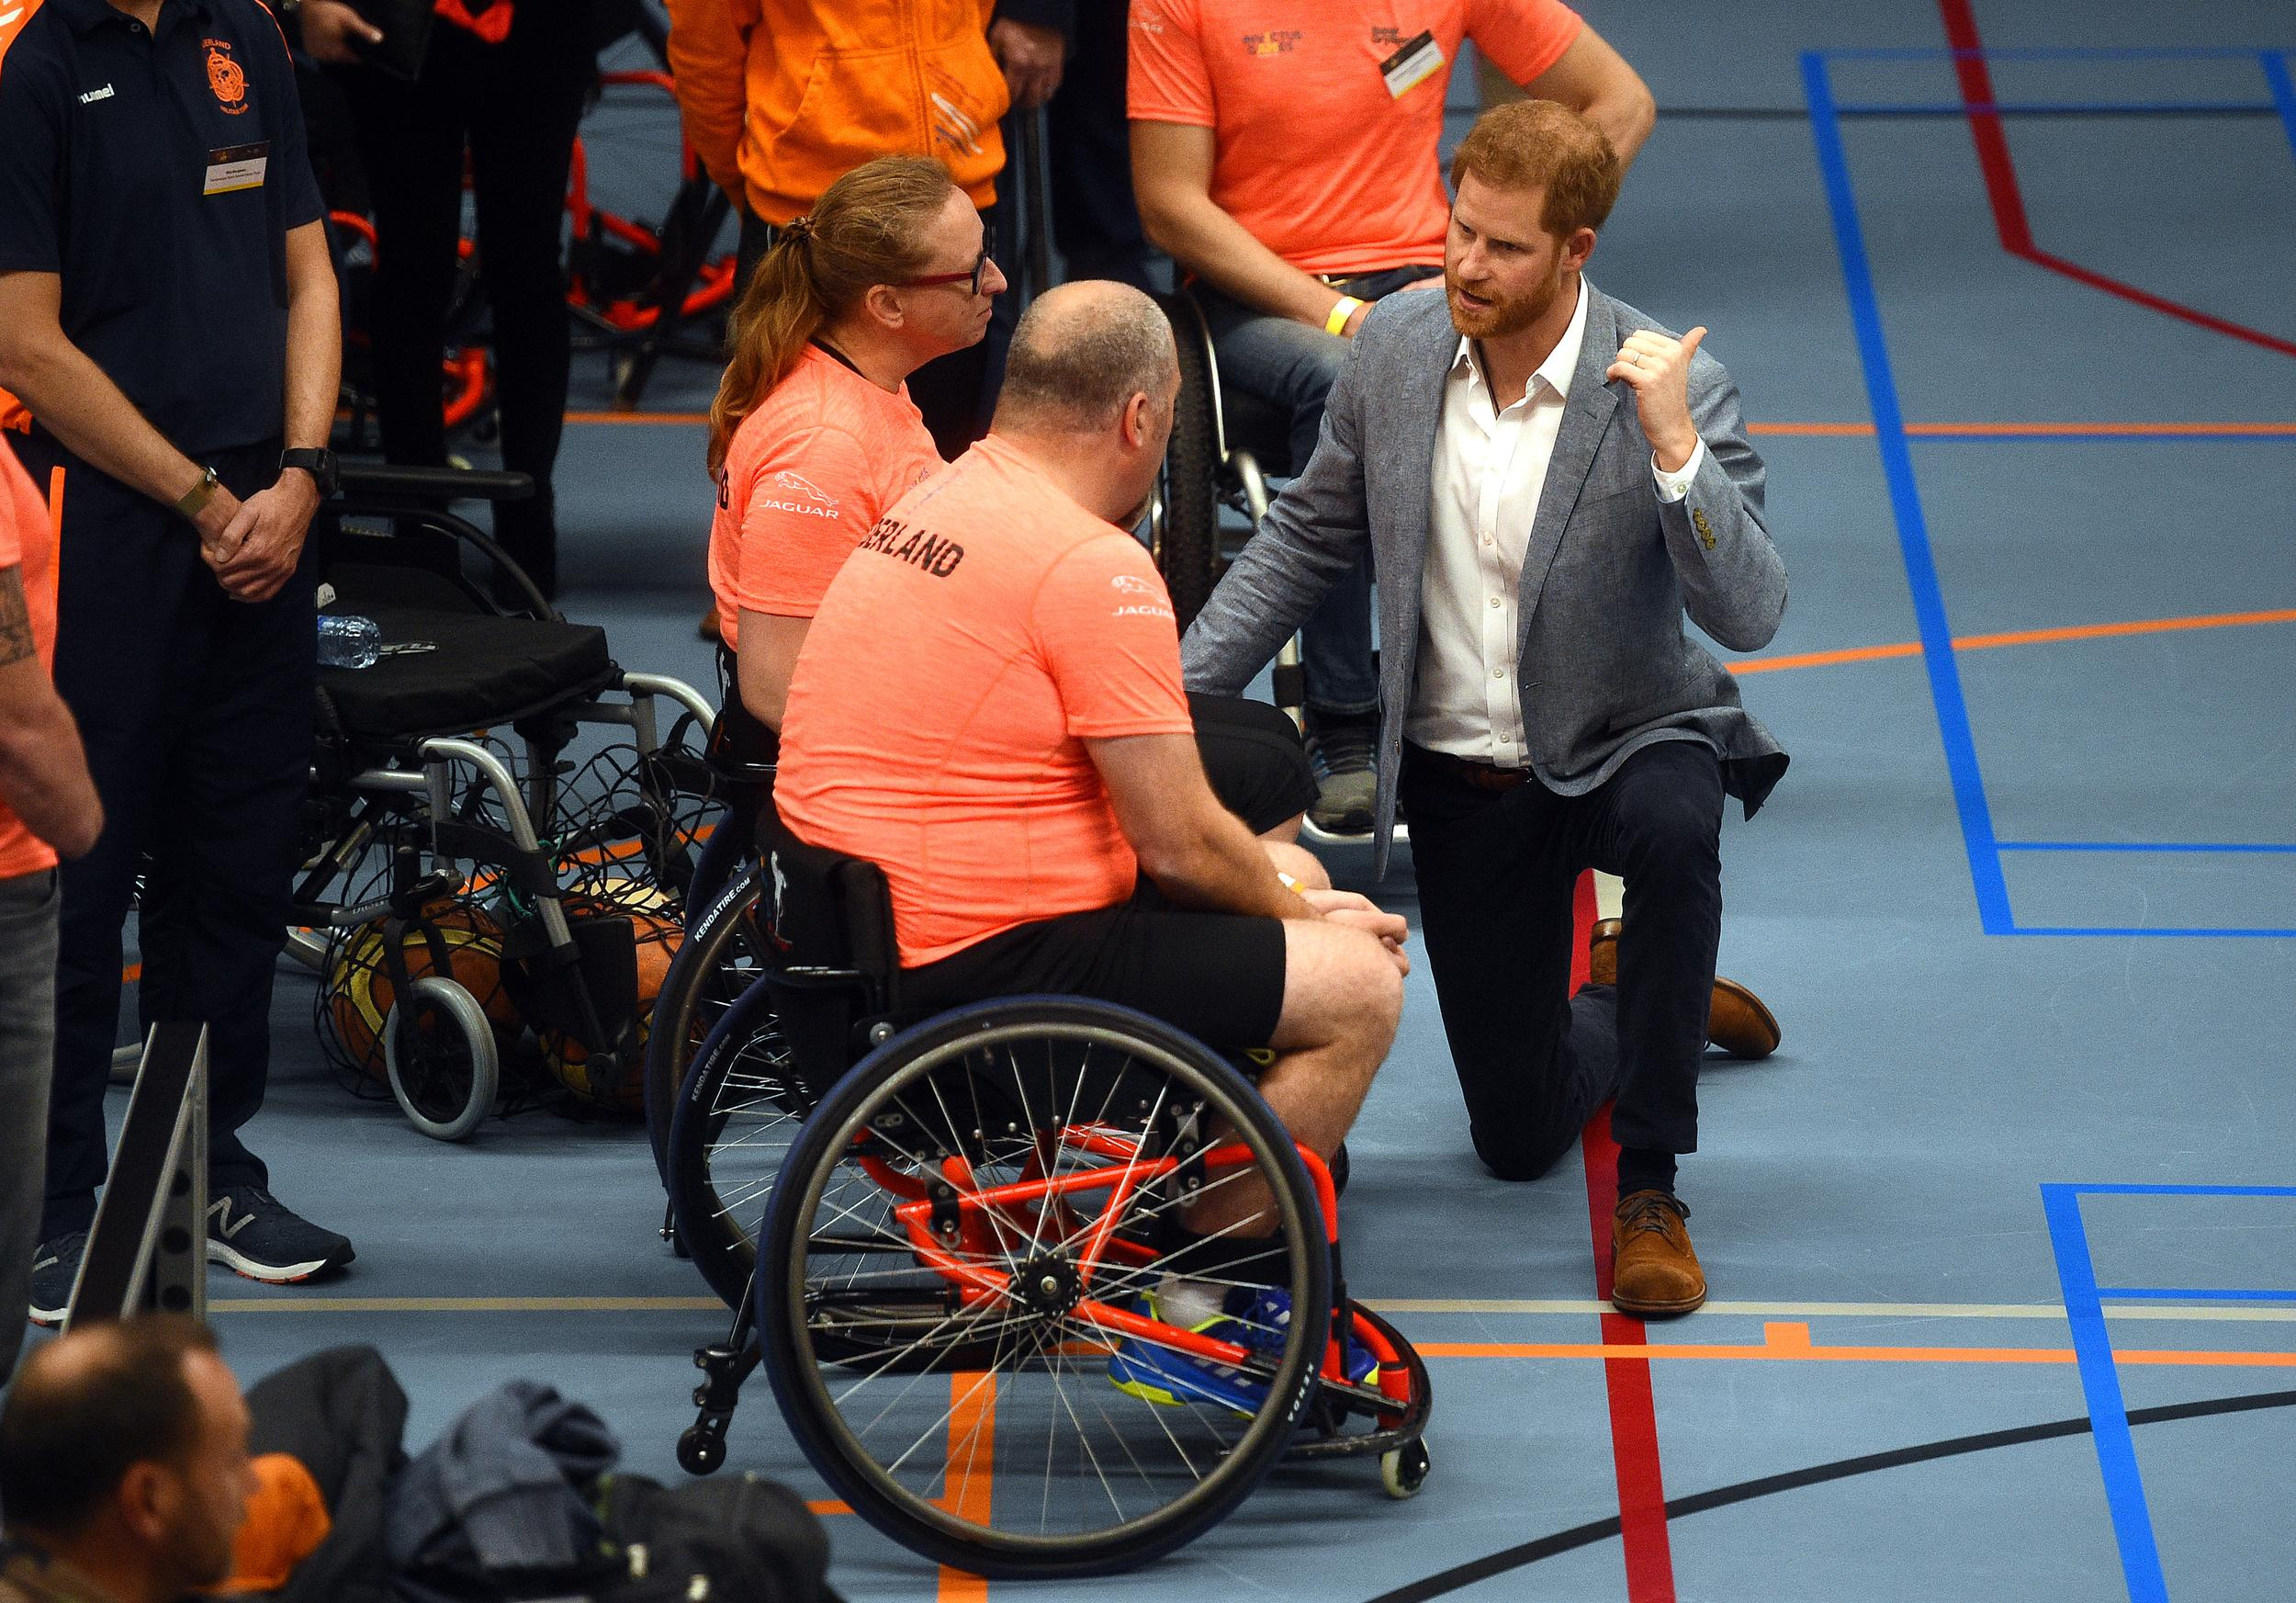 The Duke of Sussex at a sports training session at Sportcampus Zuiderpark during a visit to The Hague as part of a programme of events to mark the official launch of the Invictus Games, Netherlands. (Photo by Kirsty O'Connor/PA Images via Getty Images)